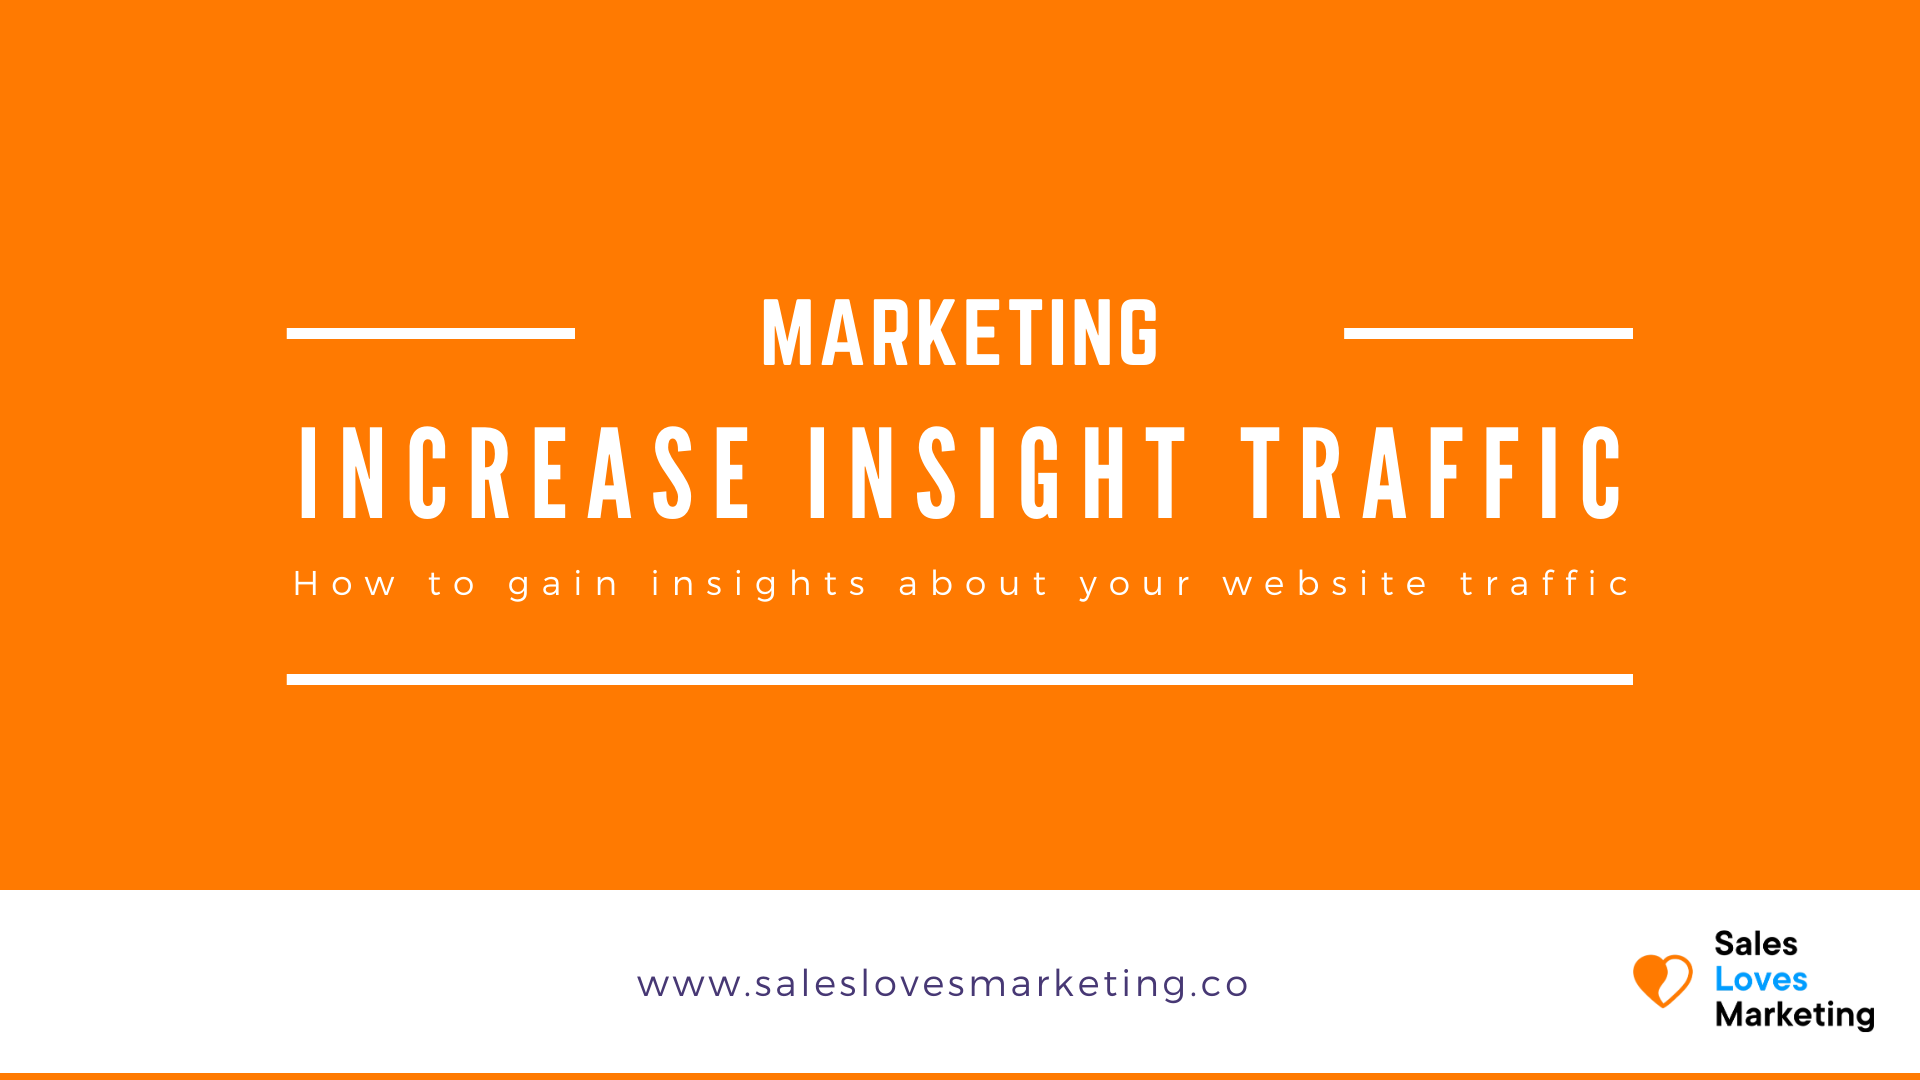 Get more insights in your current website traffic and the website traffic from your competitor with these tools